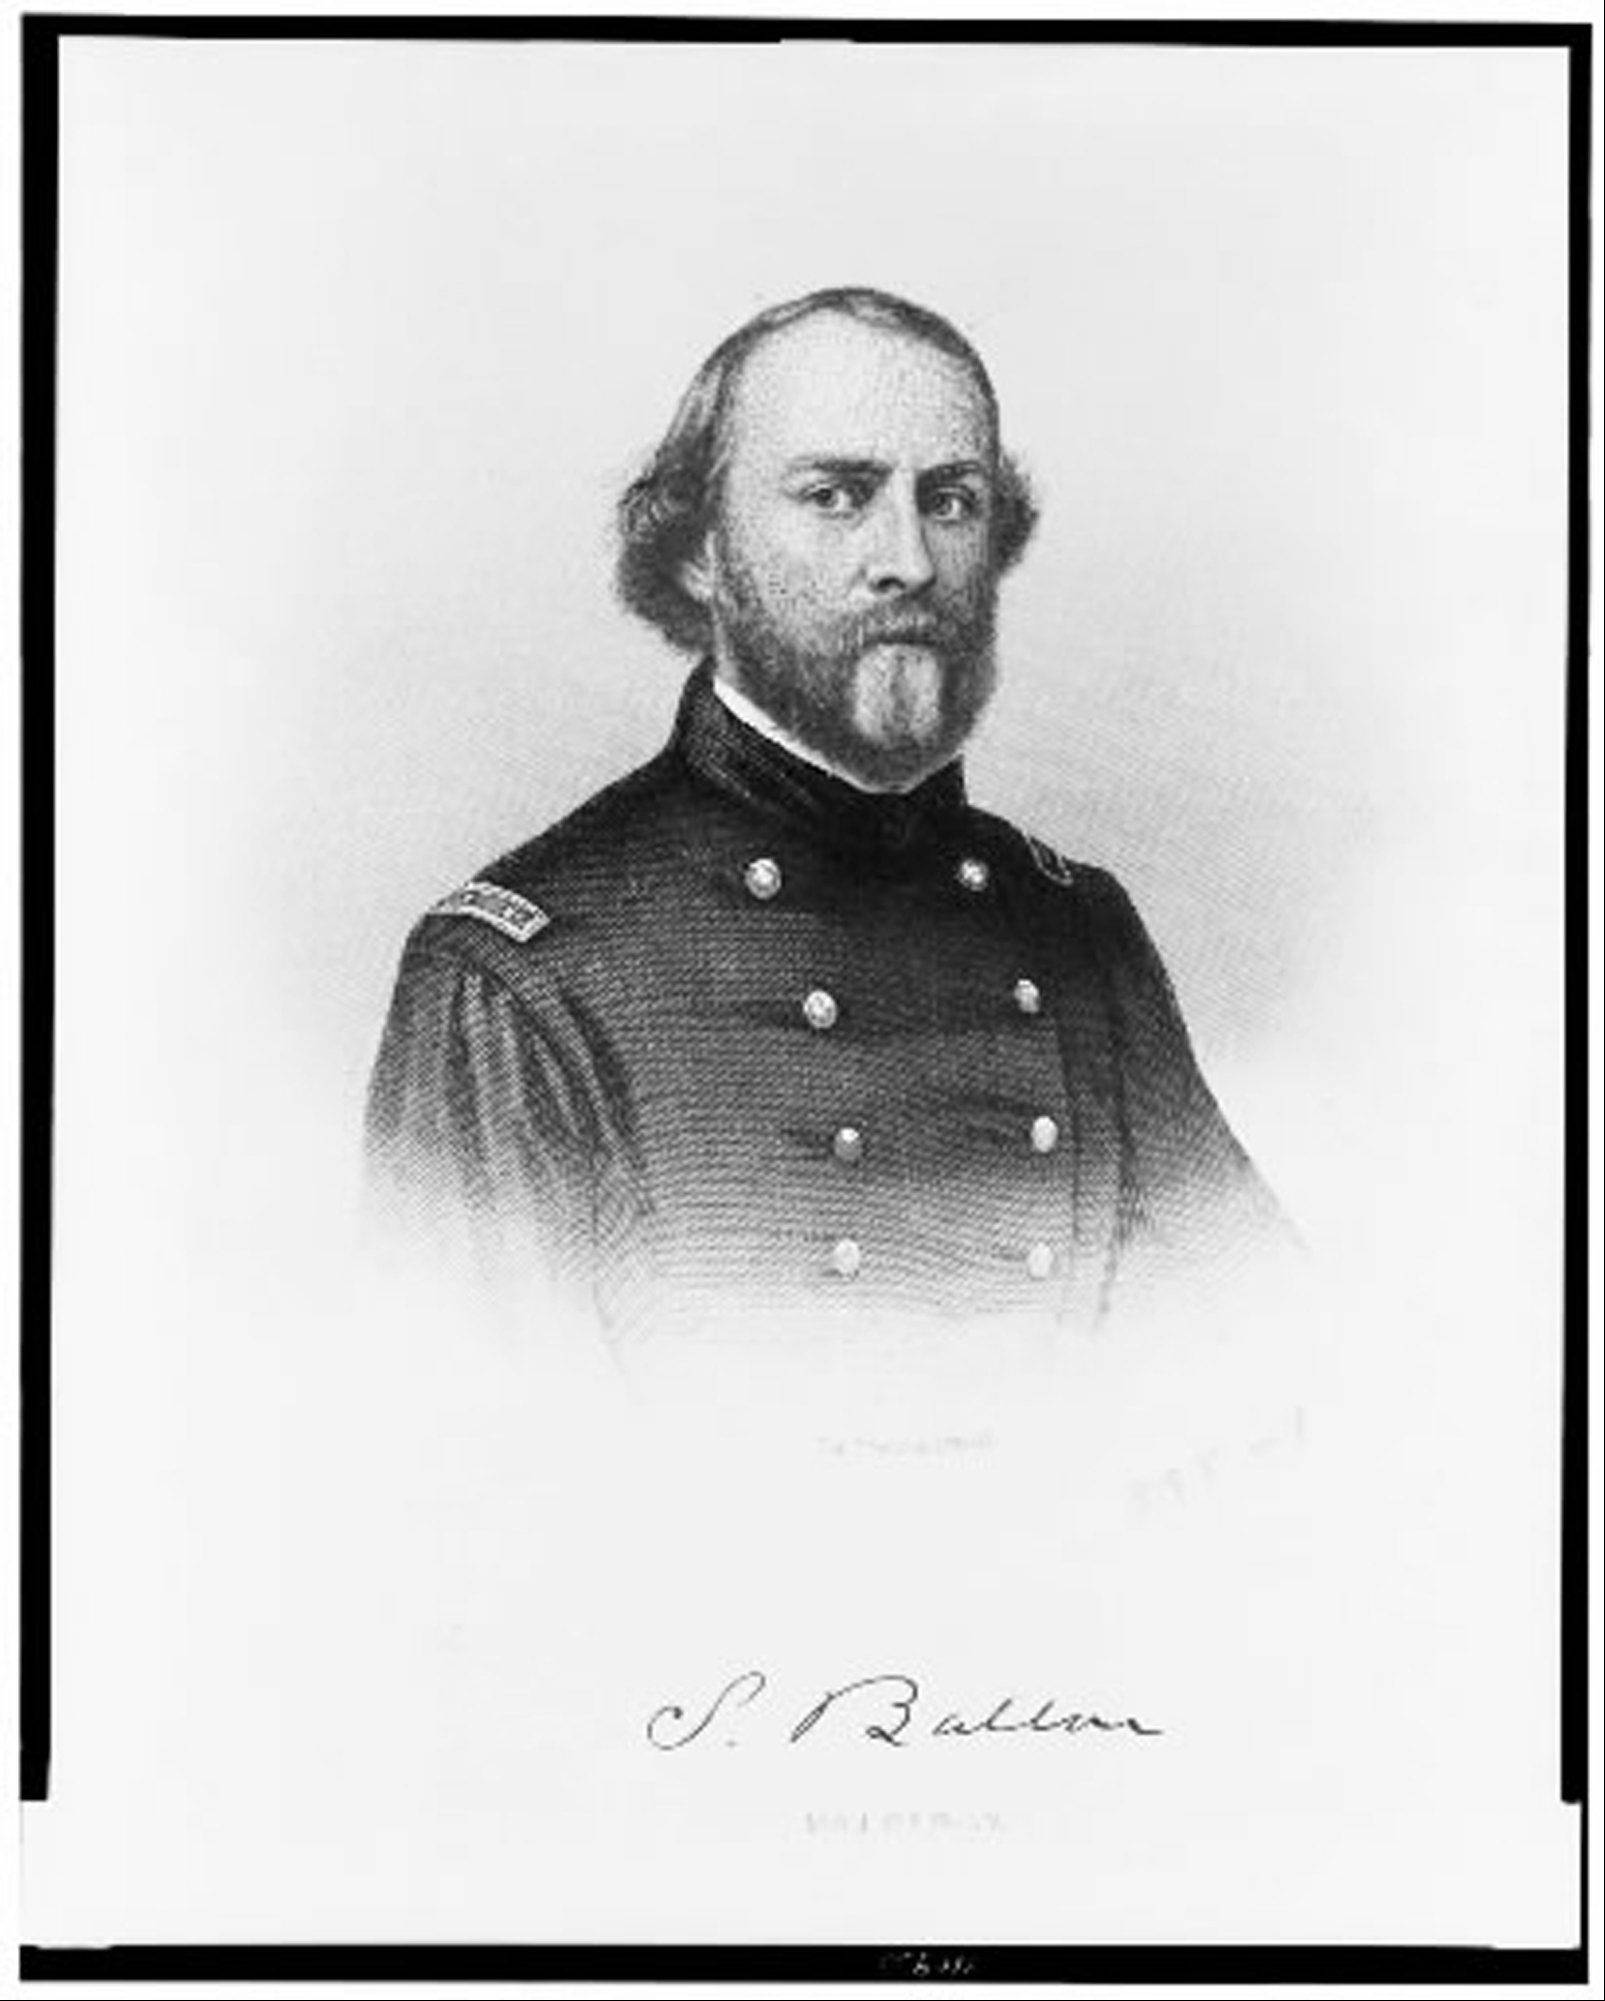 Sullivan Ballou was a 32-year-old major in the 2nd Rhode Island Infantry Regiment when he was mortally wounded at the Battle of Bull Run 150 years ago.